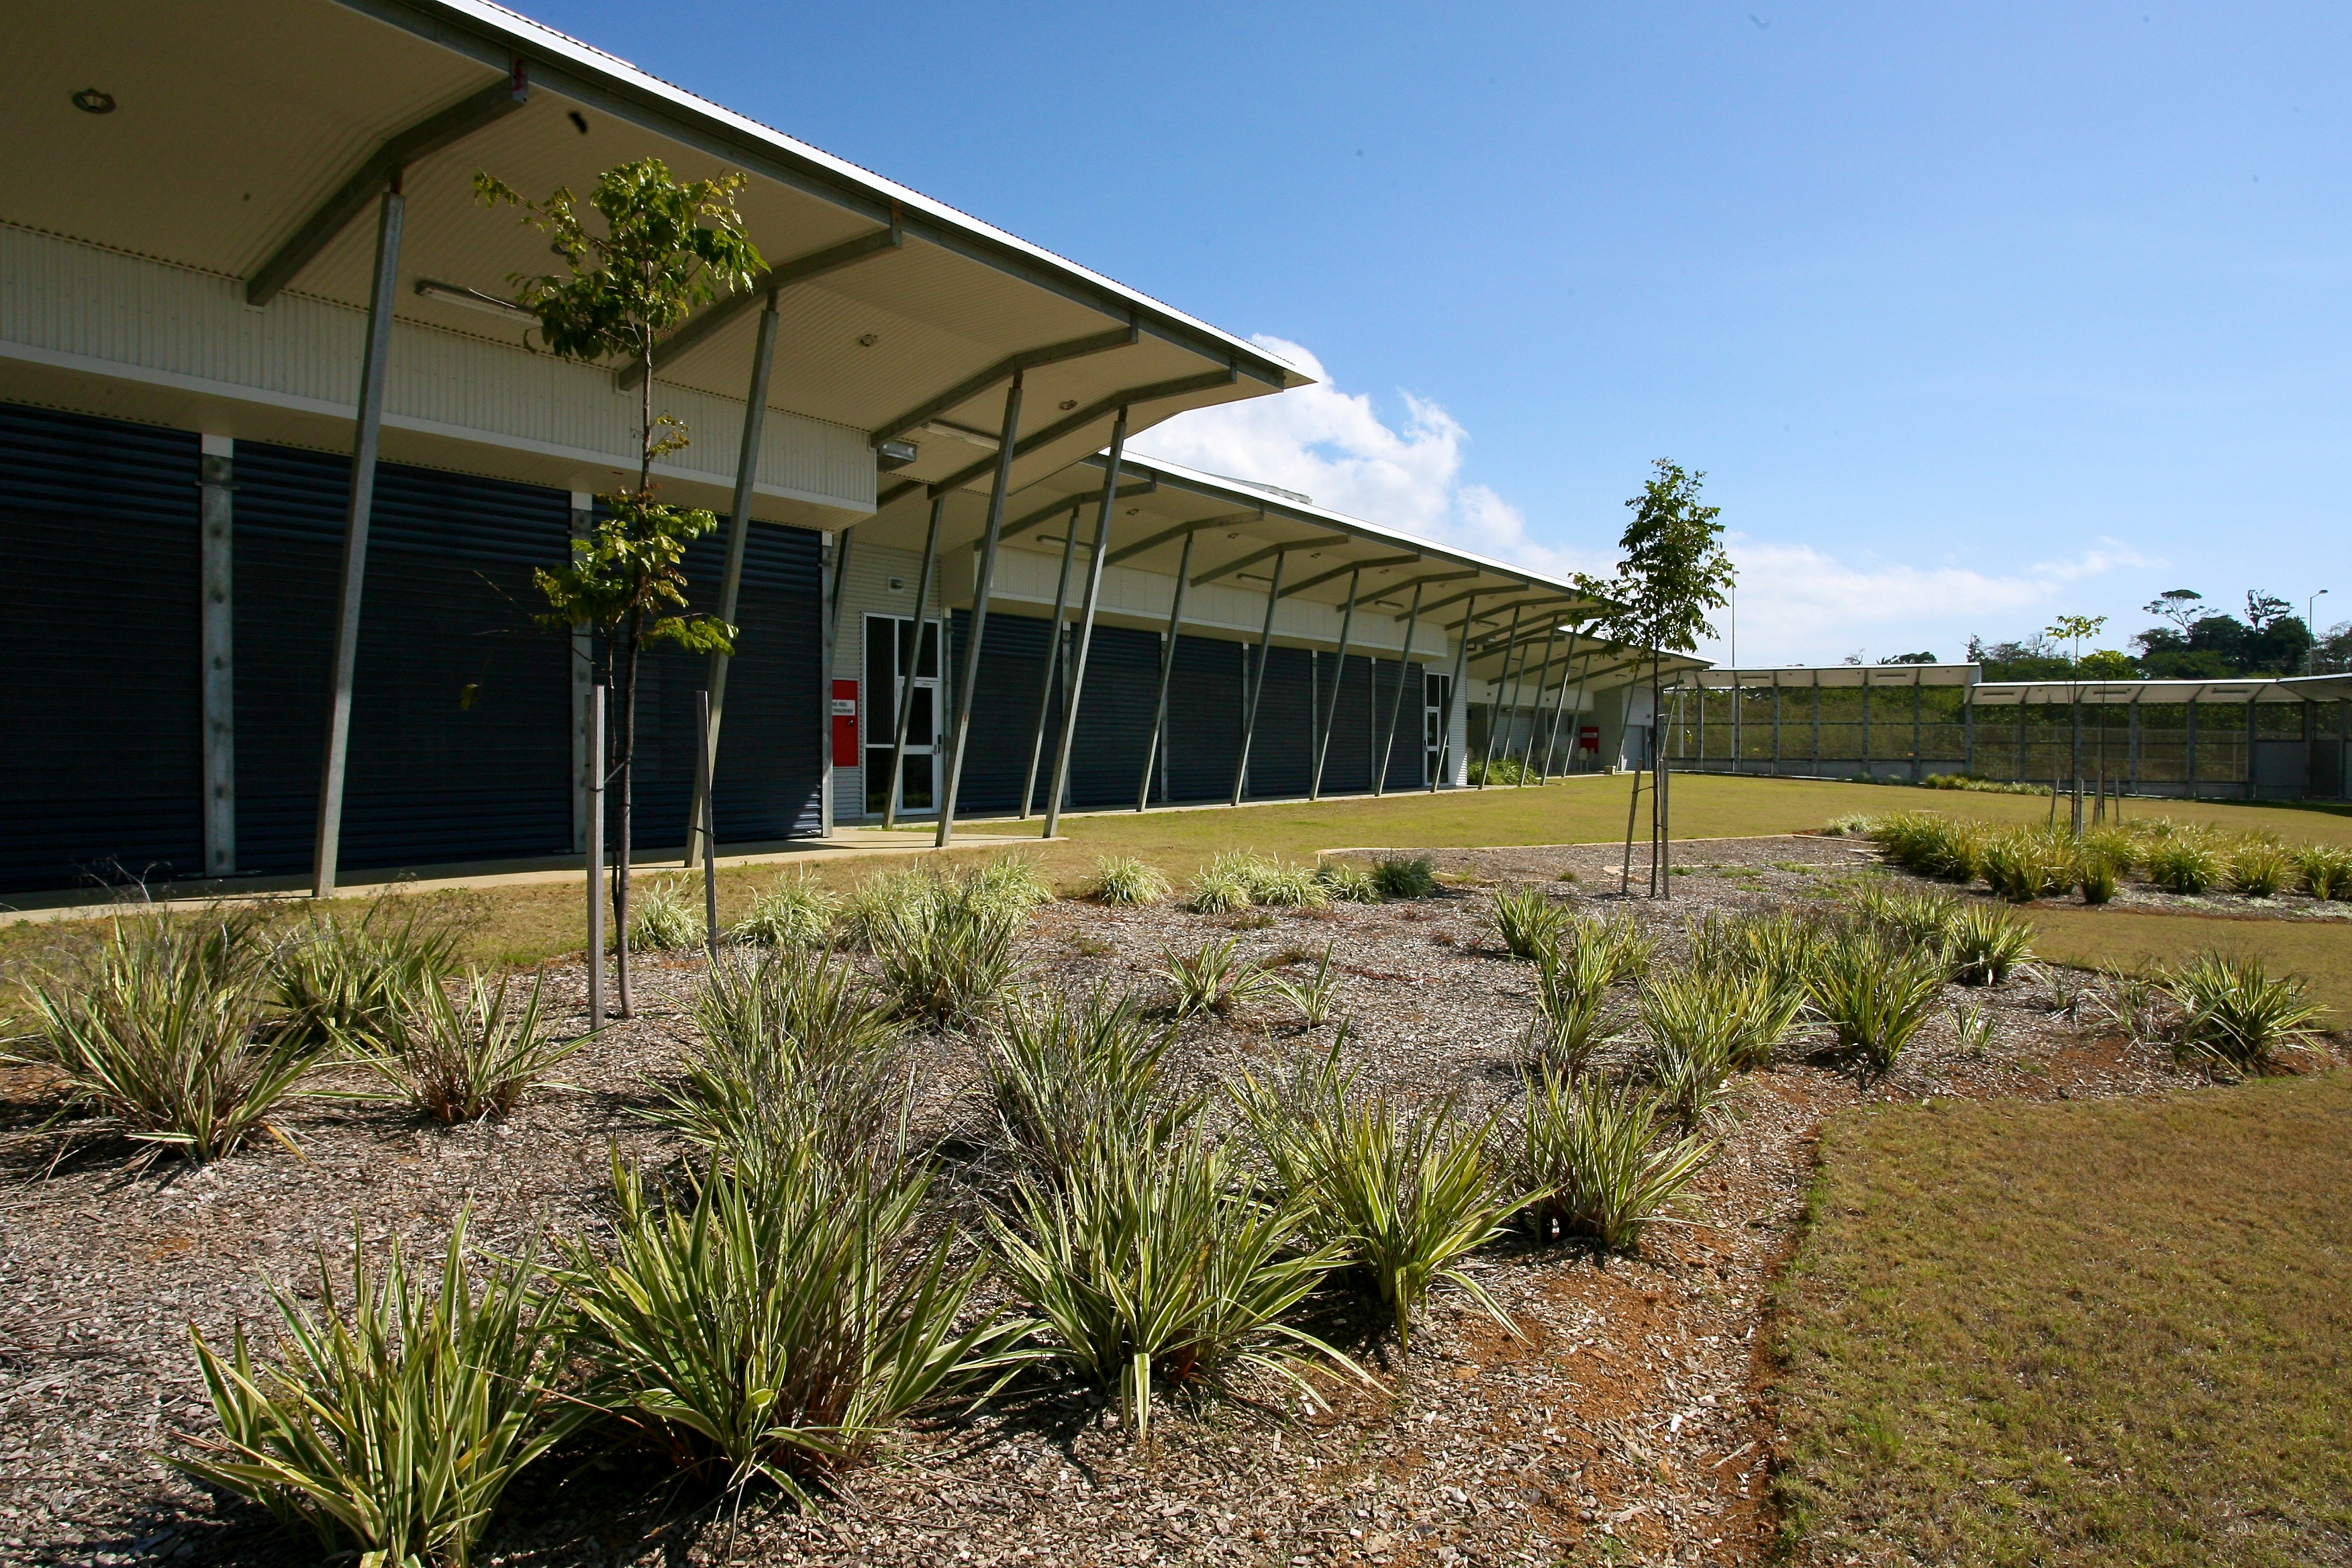 File:Christmas Island Immigration Detention Centre (5423706763).jpg - Wikimedia Commons